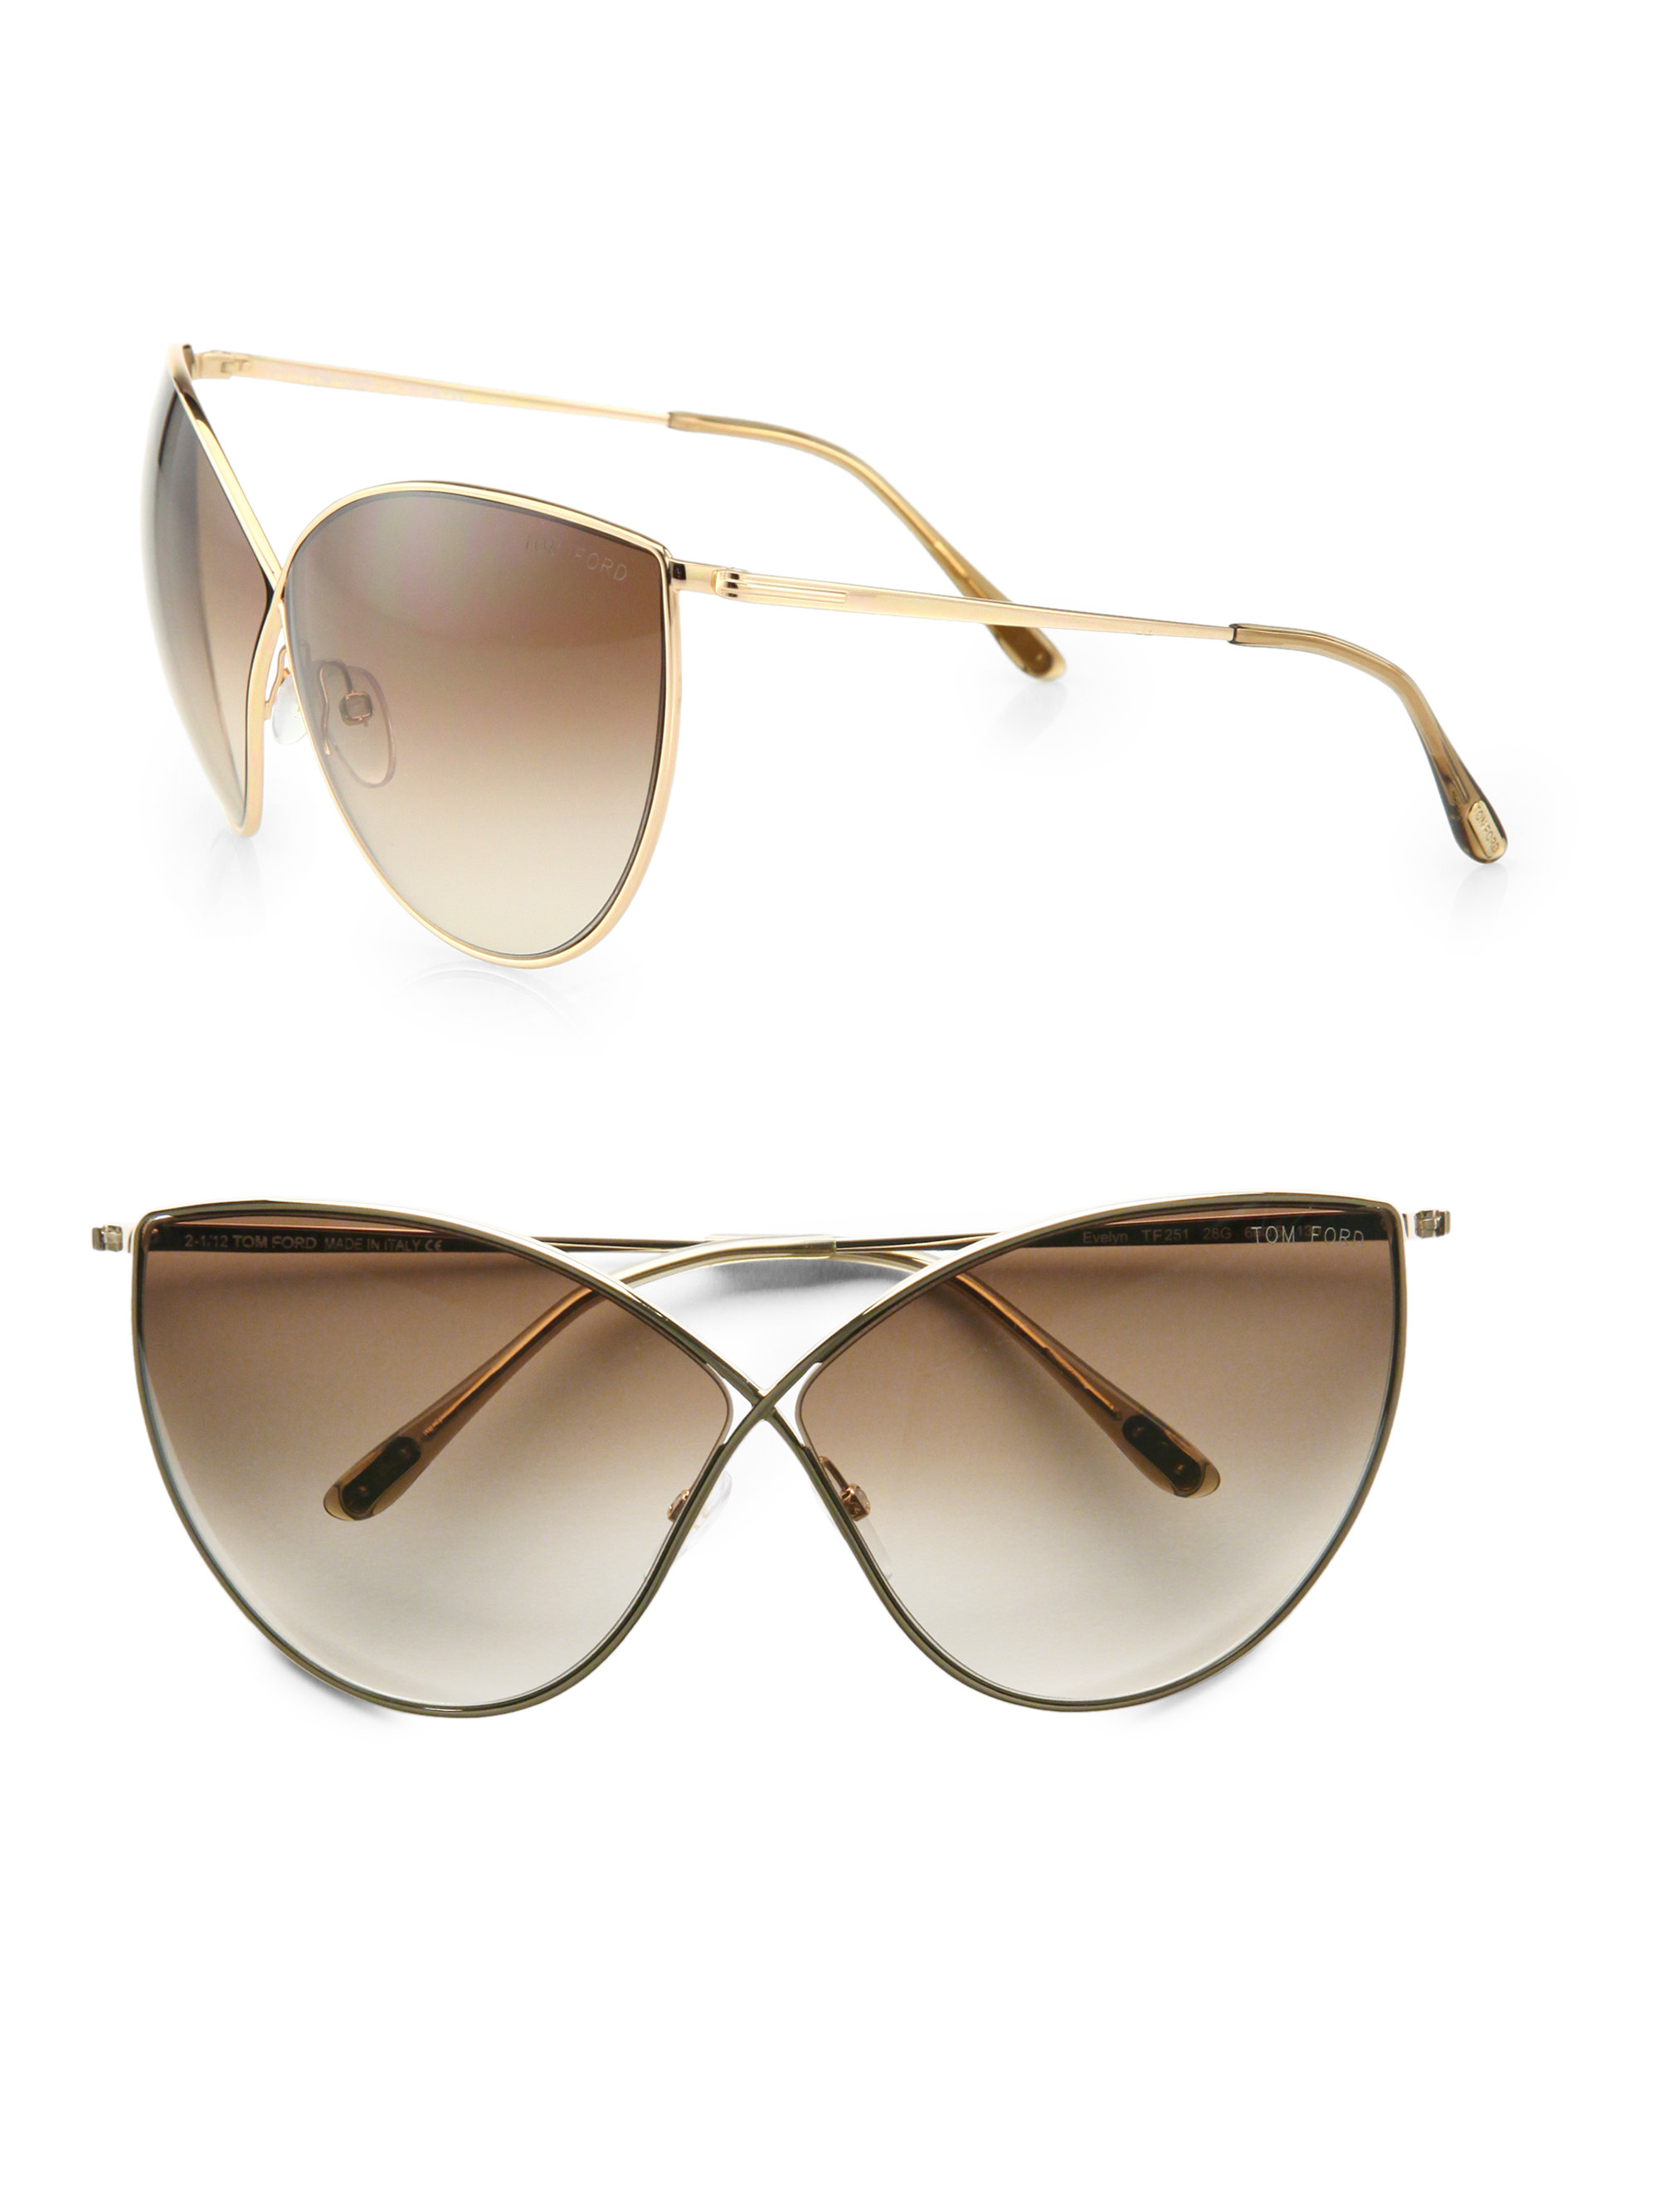 76019a07aeb5 Gallery. Previously sold at: Saks Fifth Avenue · Women's Tom Ford Cat Eye